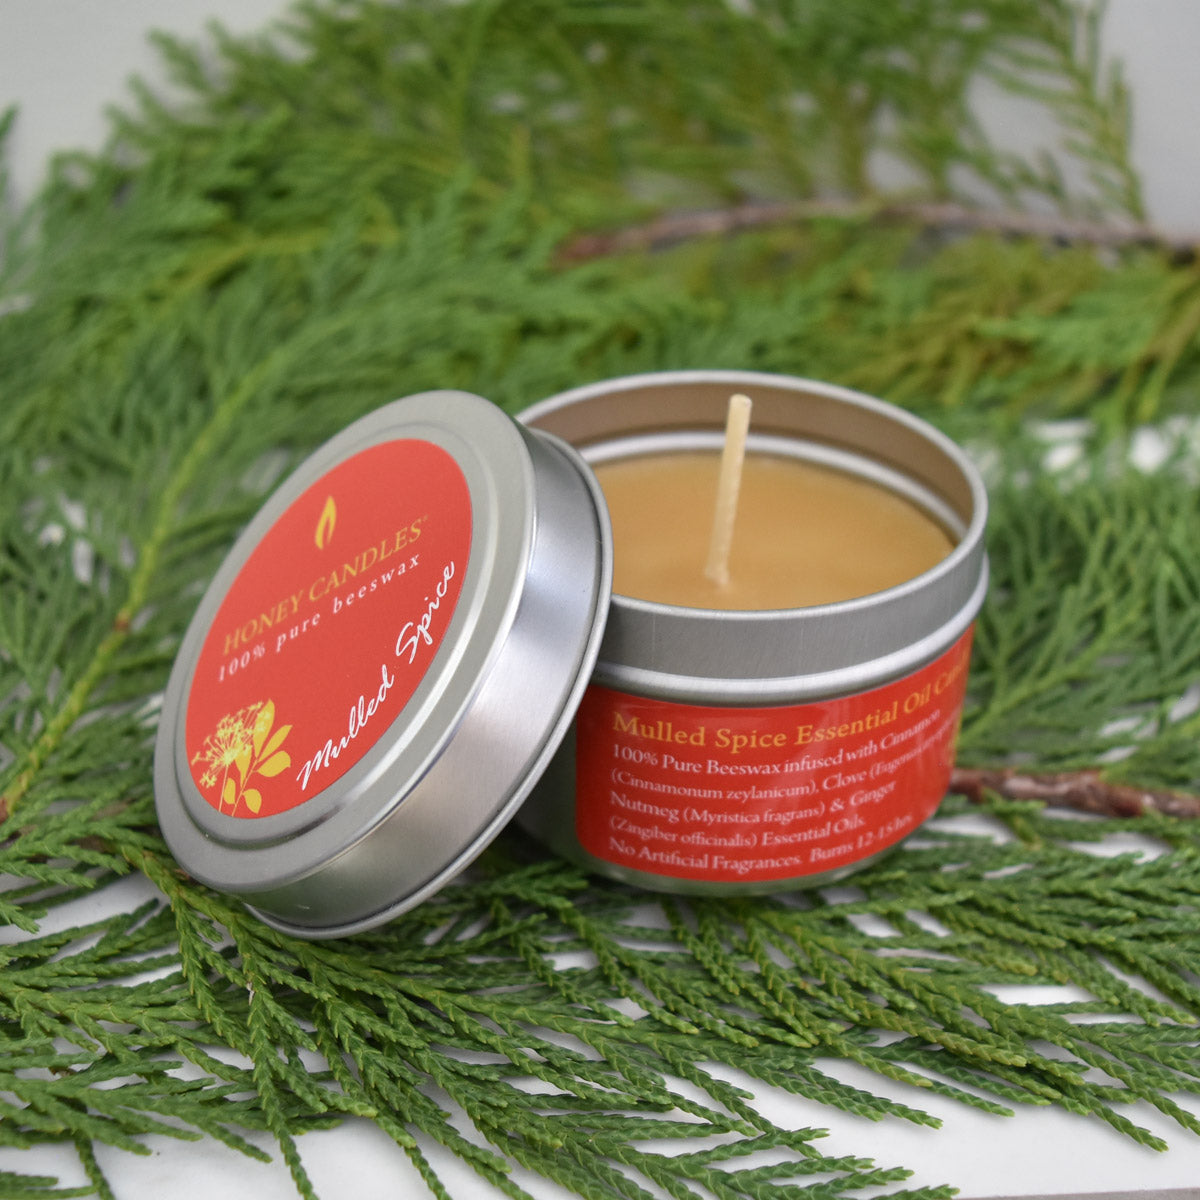 beeswax candle infused with essential oils to smell like spices